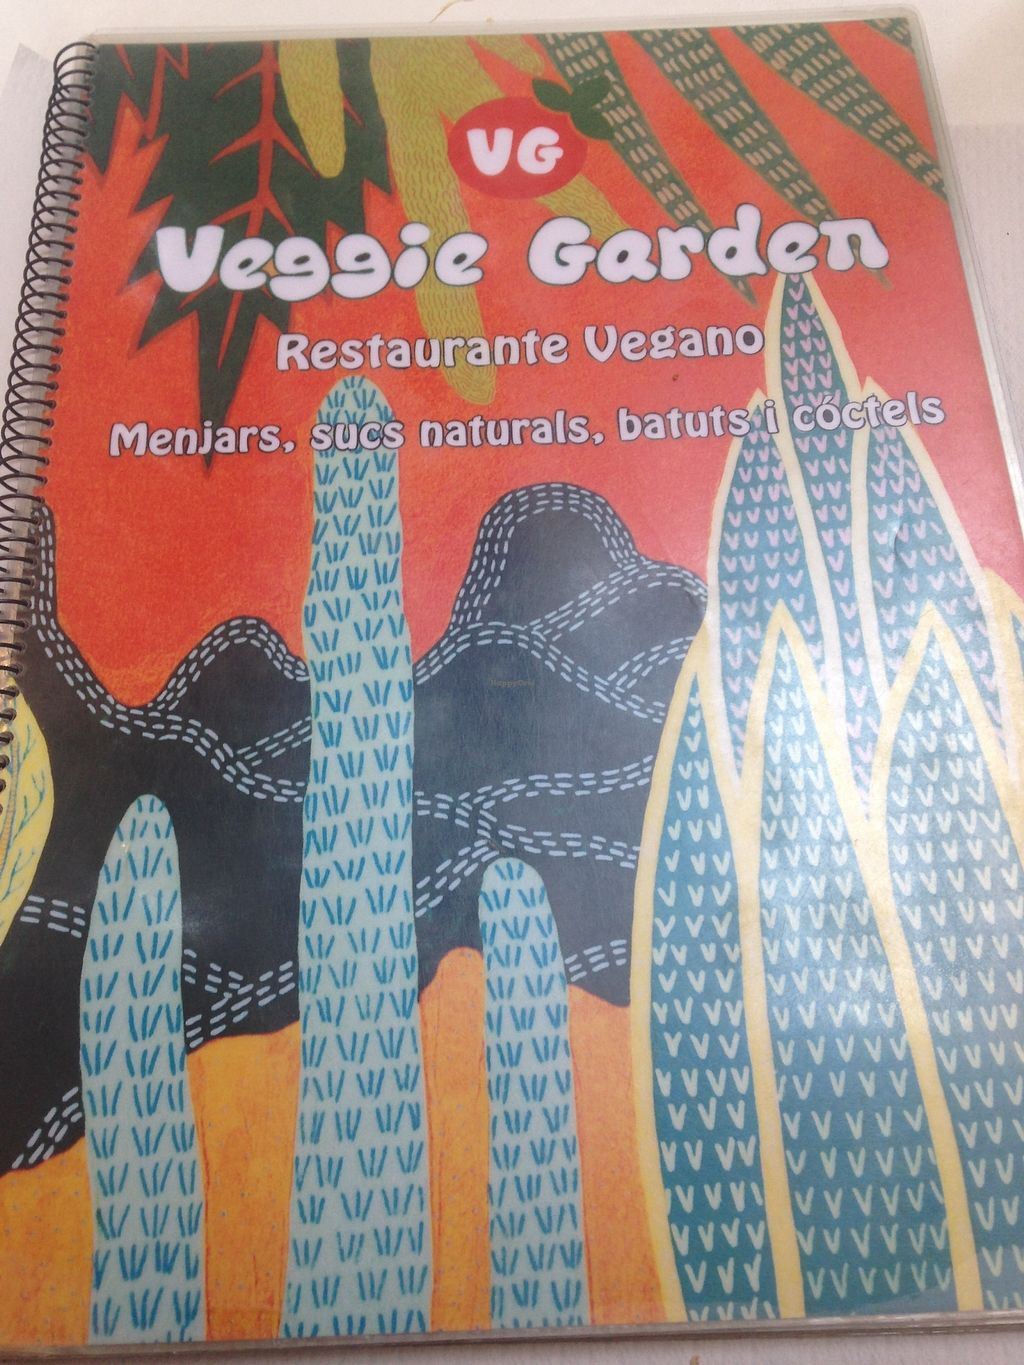 """Photo of Veggie Garden - Dels Angels  by <a href=""""/members/profile/SHA1107"""">SHA1107</a> <br/>Front of menu  <br/> November 1, 2017  - <a href='/contact/abuse/image/28983/320627'>Report</a>"""